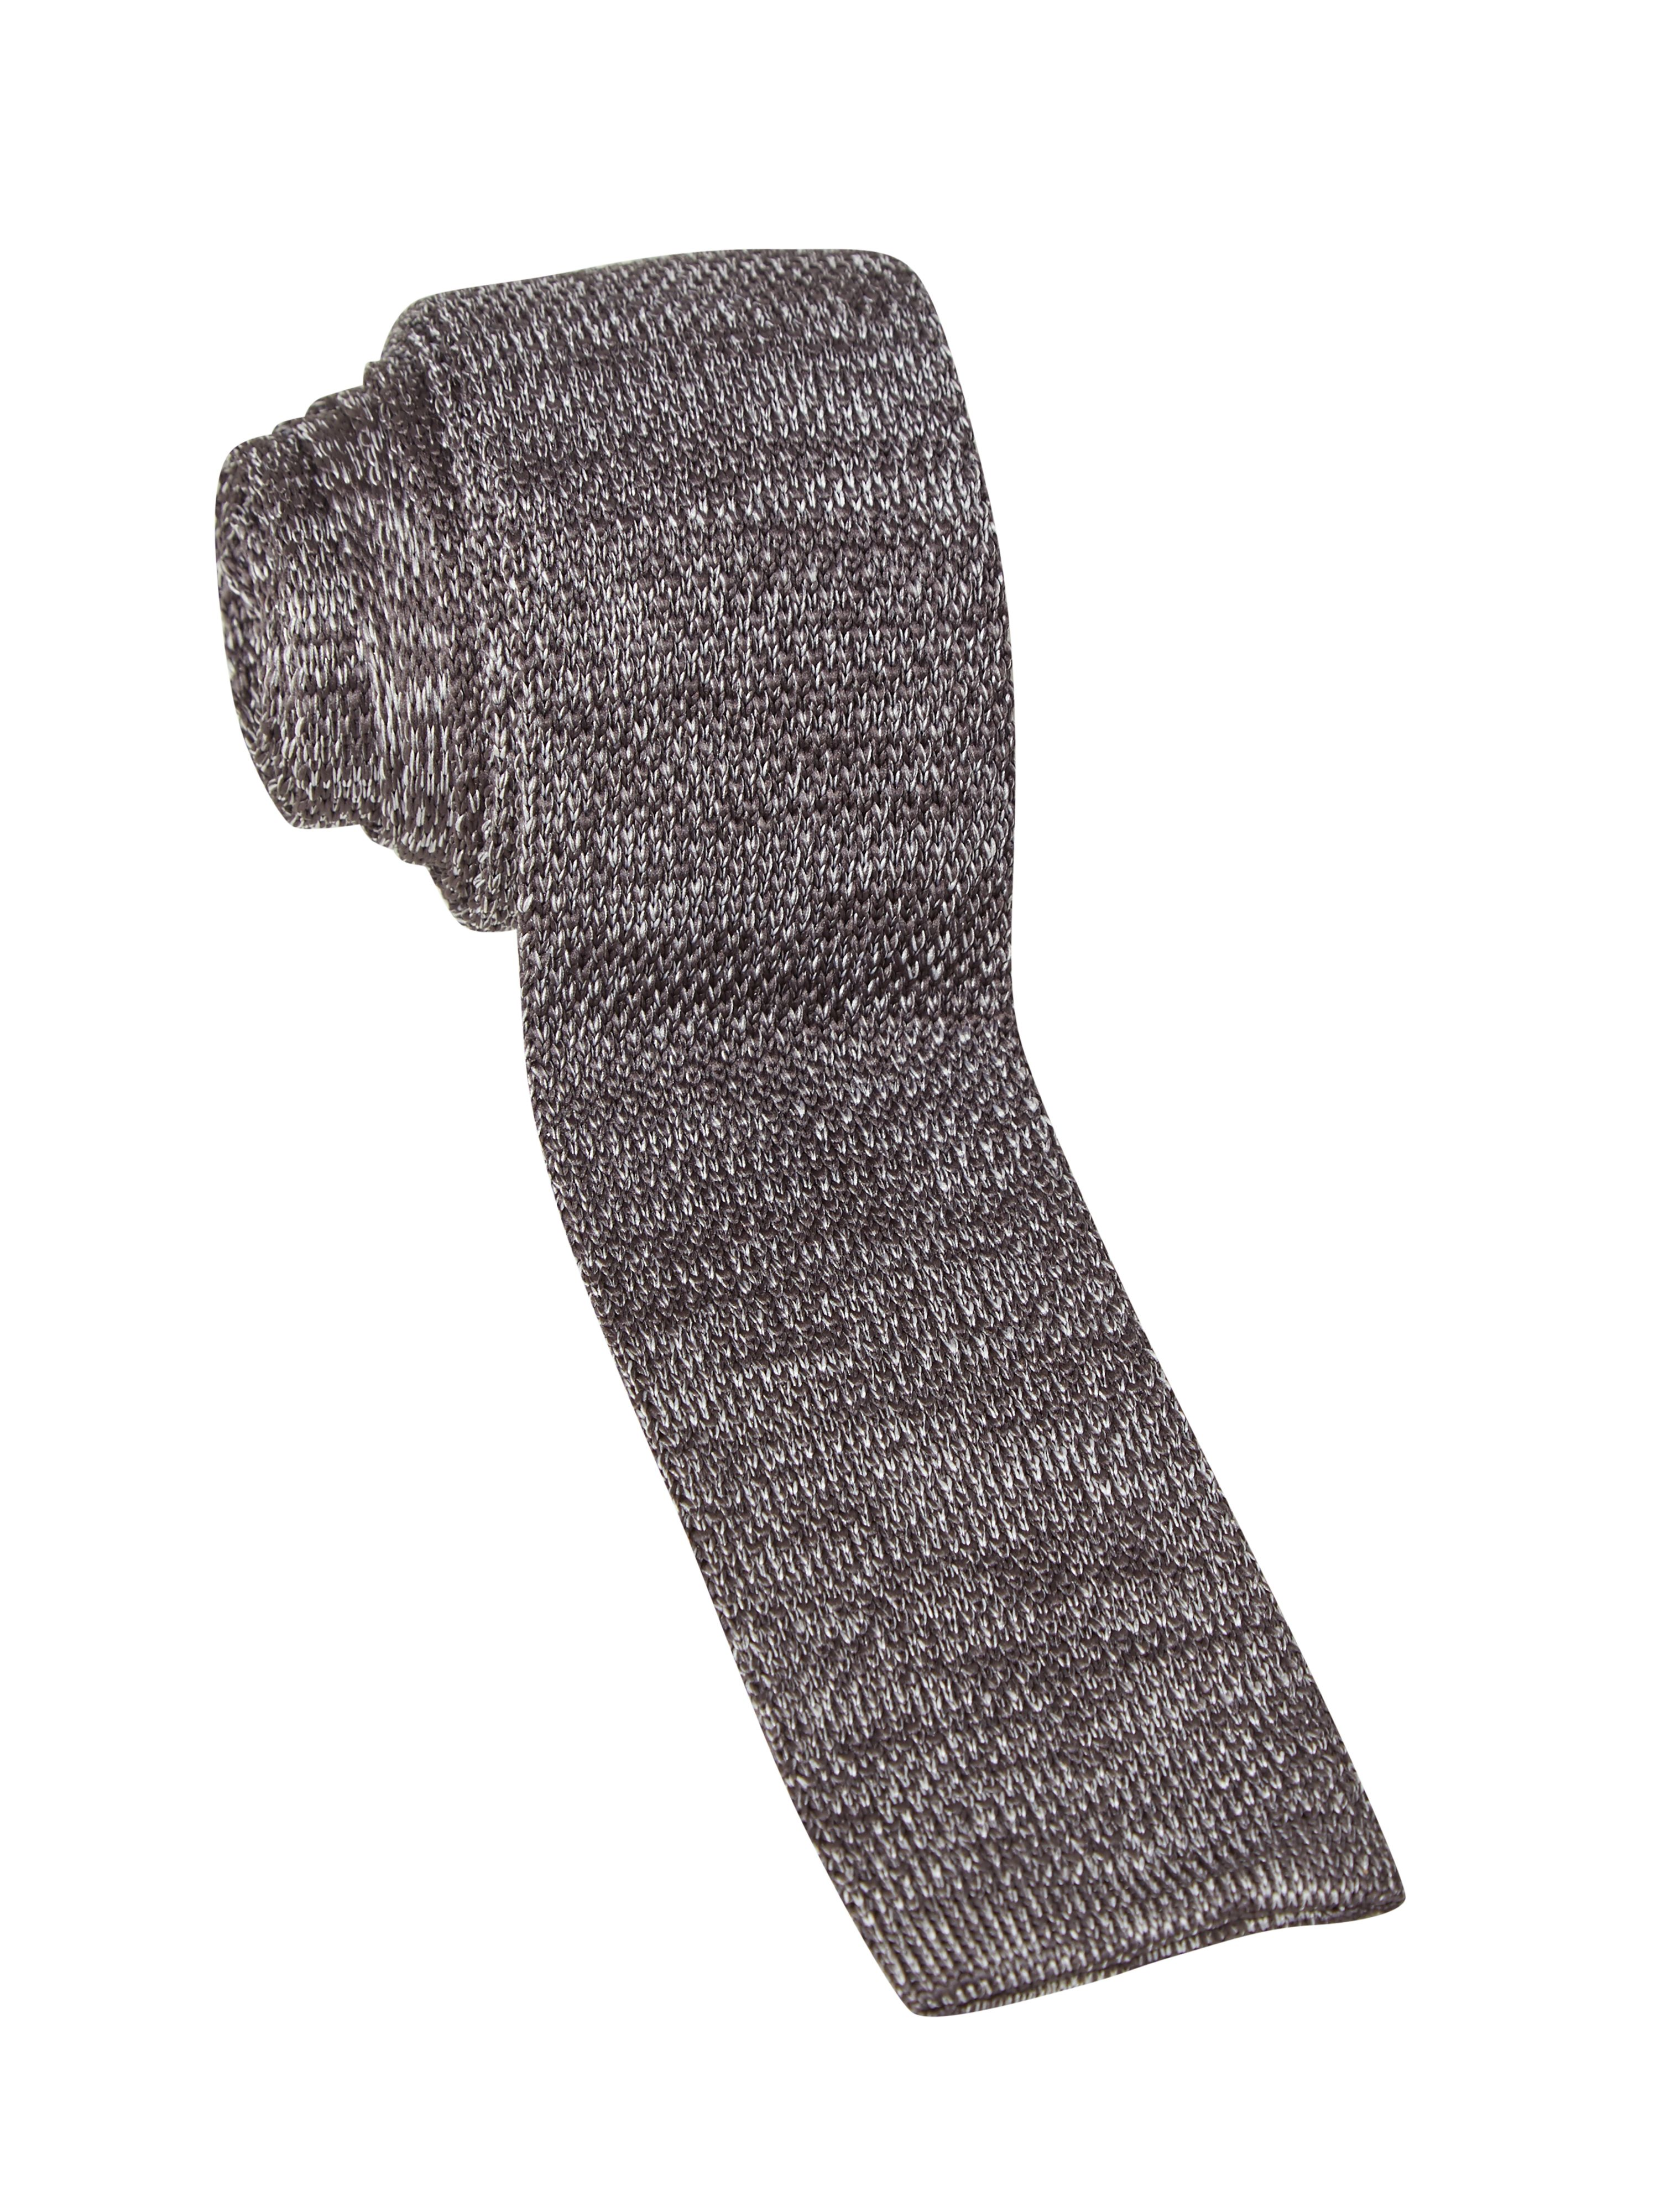 White Stuff Springer Plain Knit Tie Grey